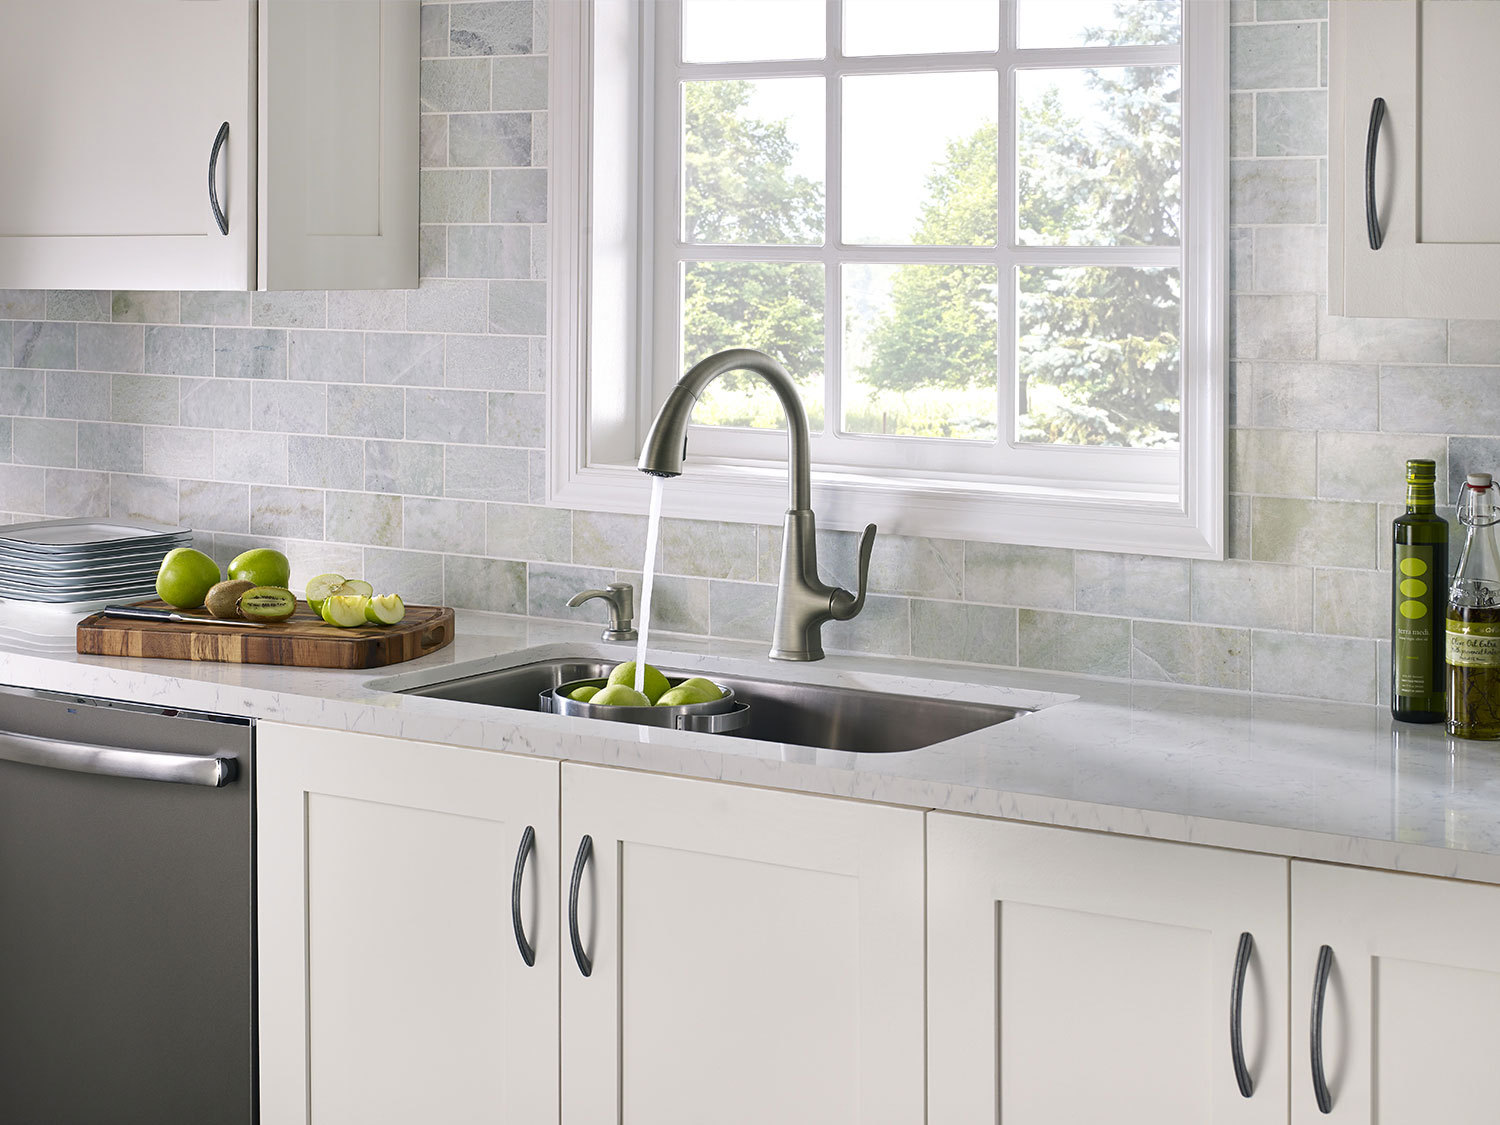 Uncategorized Win Kitchen Appliances compliment a friend and win slate kitchen business wire in the 2014 dream sweepstakes faucets ge appliances give consumers